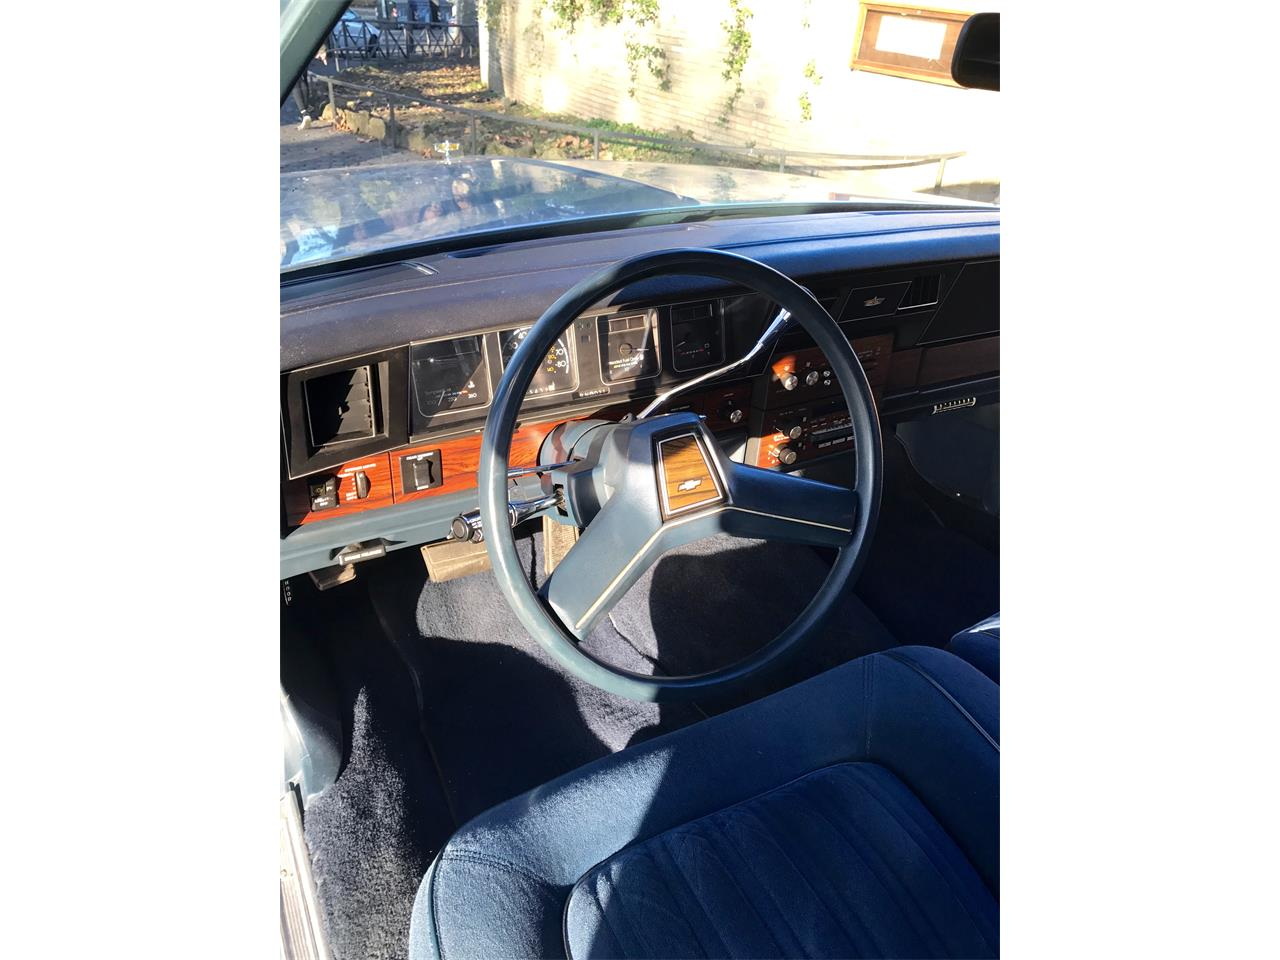 Large Picture of 1987 Chevrolet Caprice located in Rome Italy Offered by a Private Seller - JH35